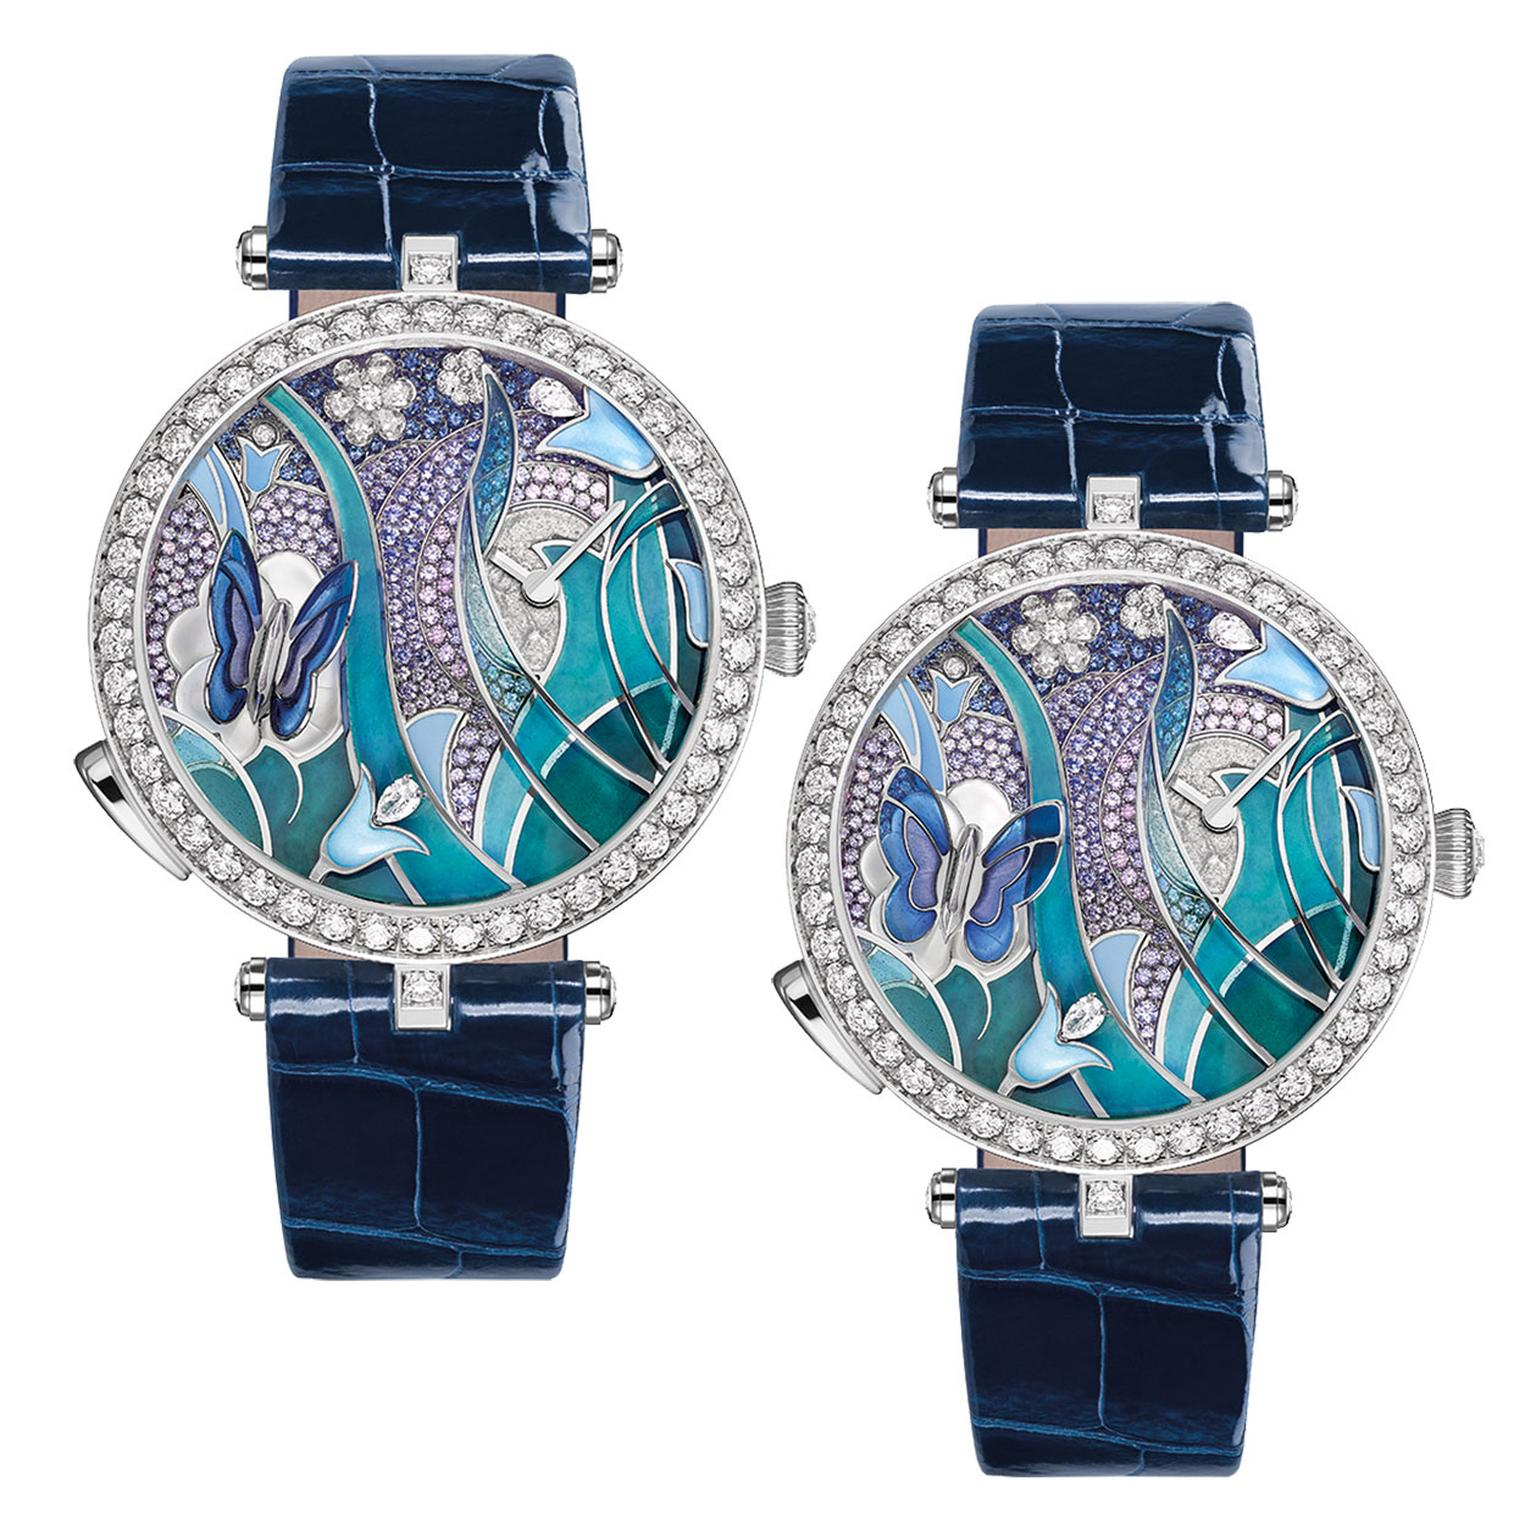 Van Cleef & Arpels Lady Arpels Papillon Automate watch